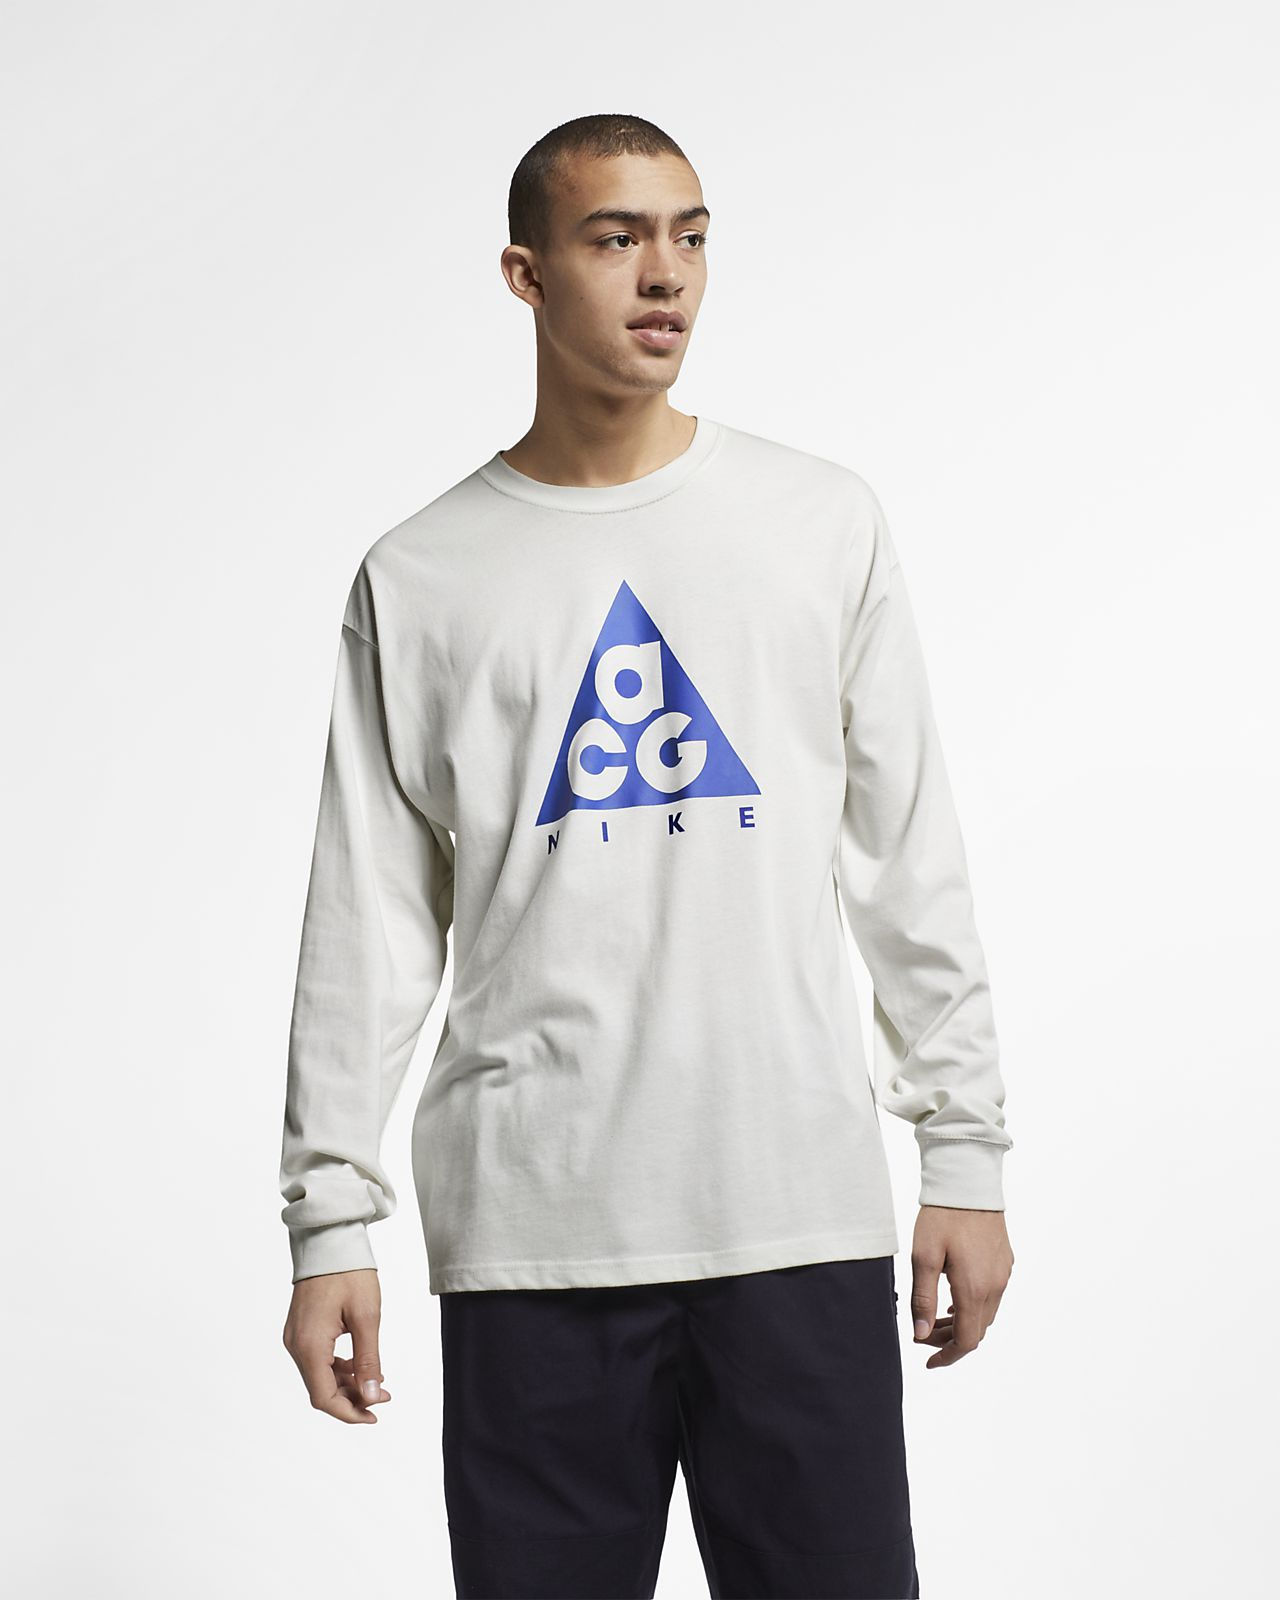 genuine shoes promo code more photos Nike ACG Men's Long-Sleeve T-Shirt